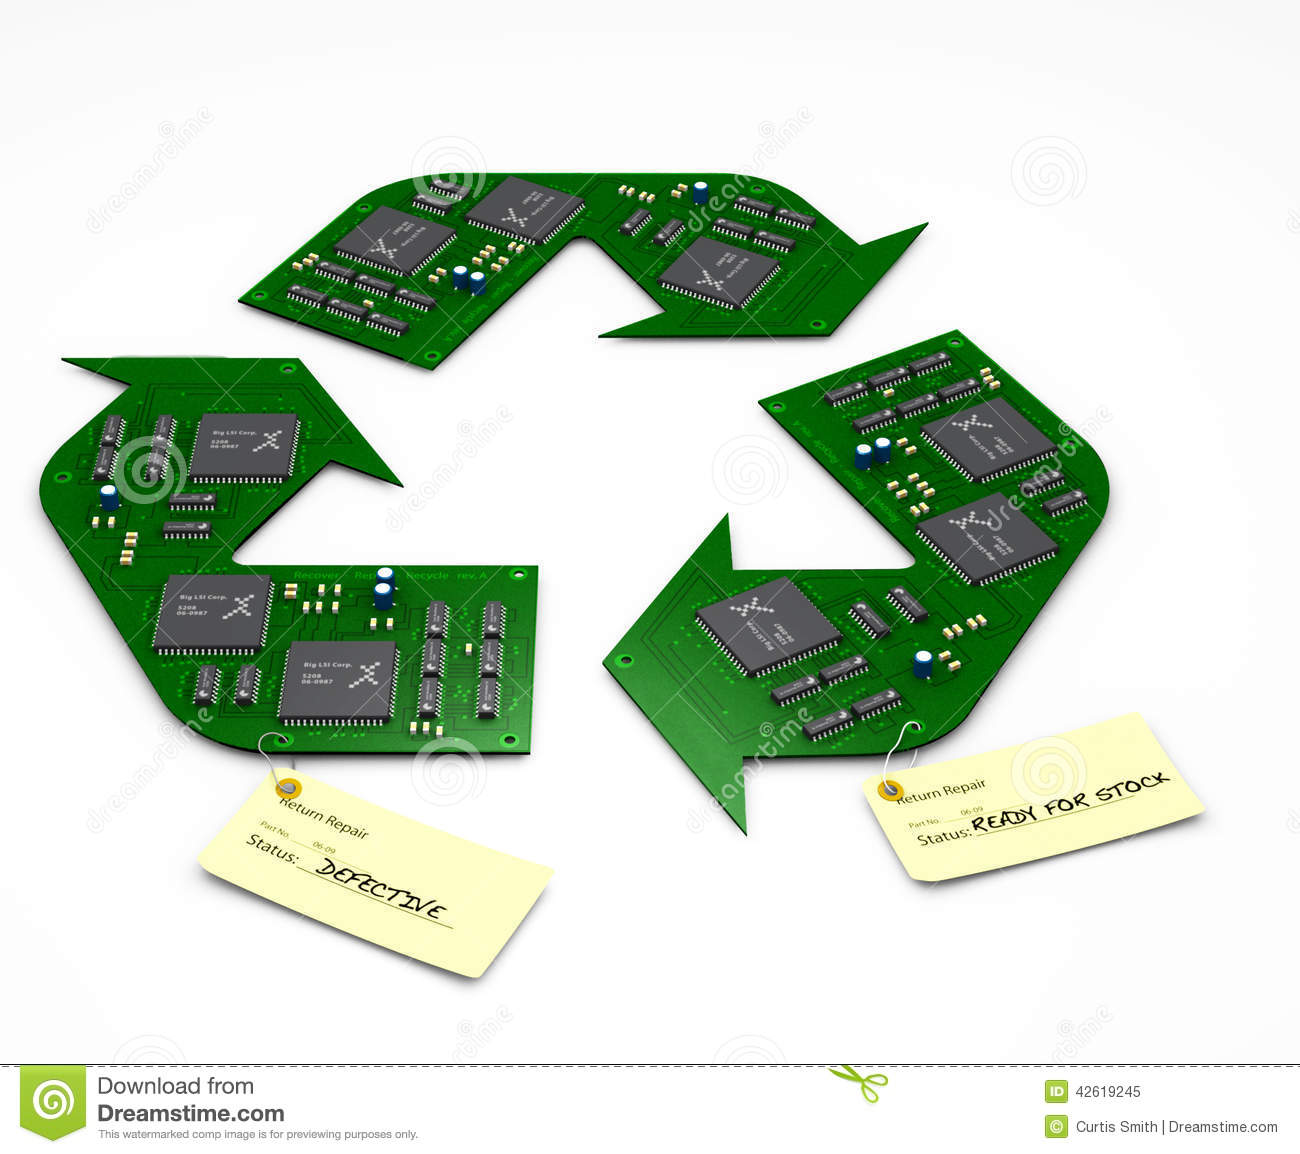 Recycle and Repair electronic circuit boards